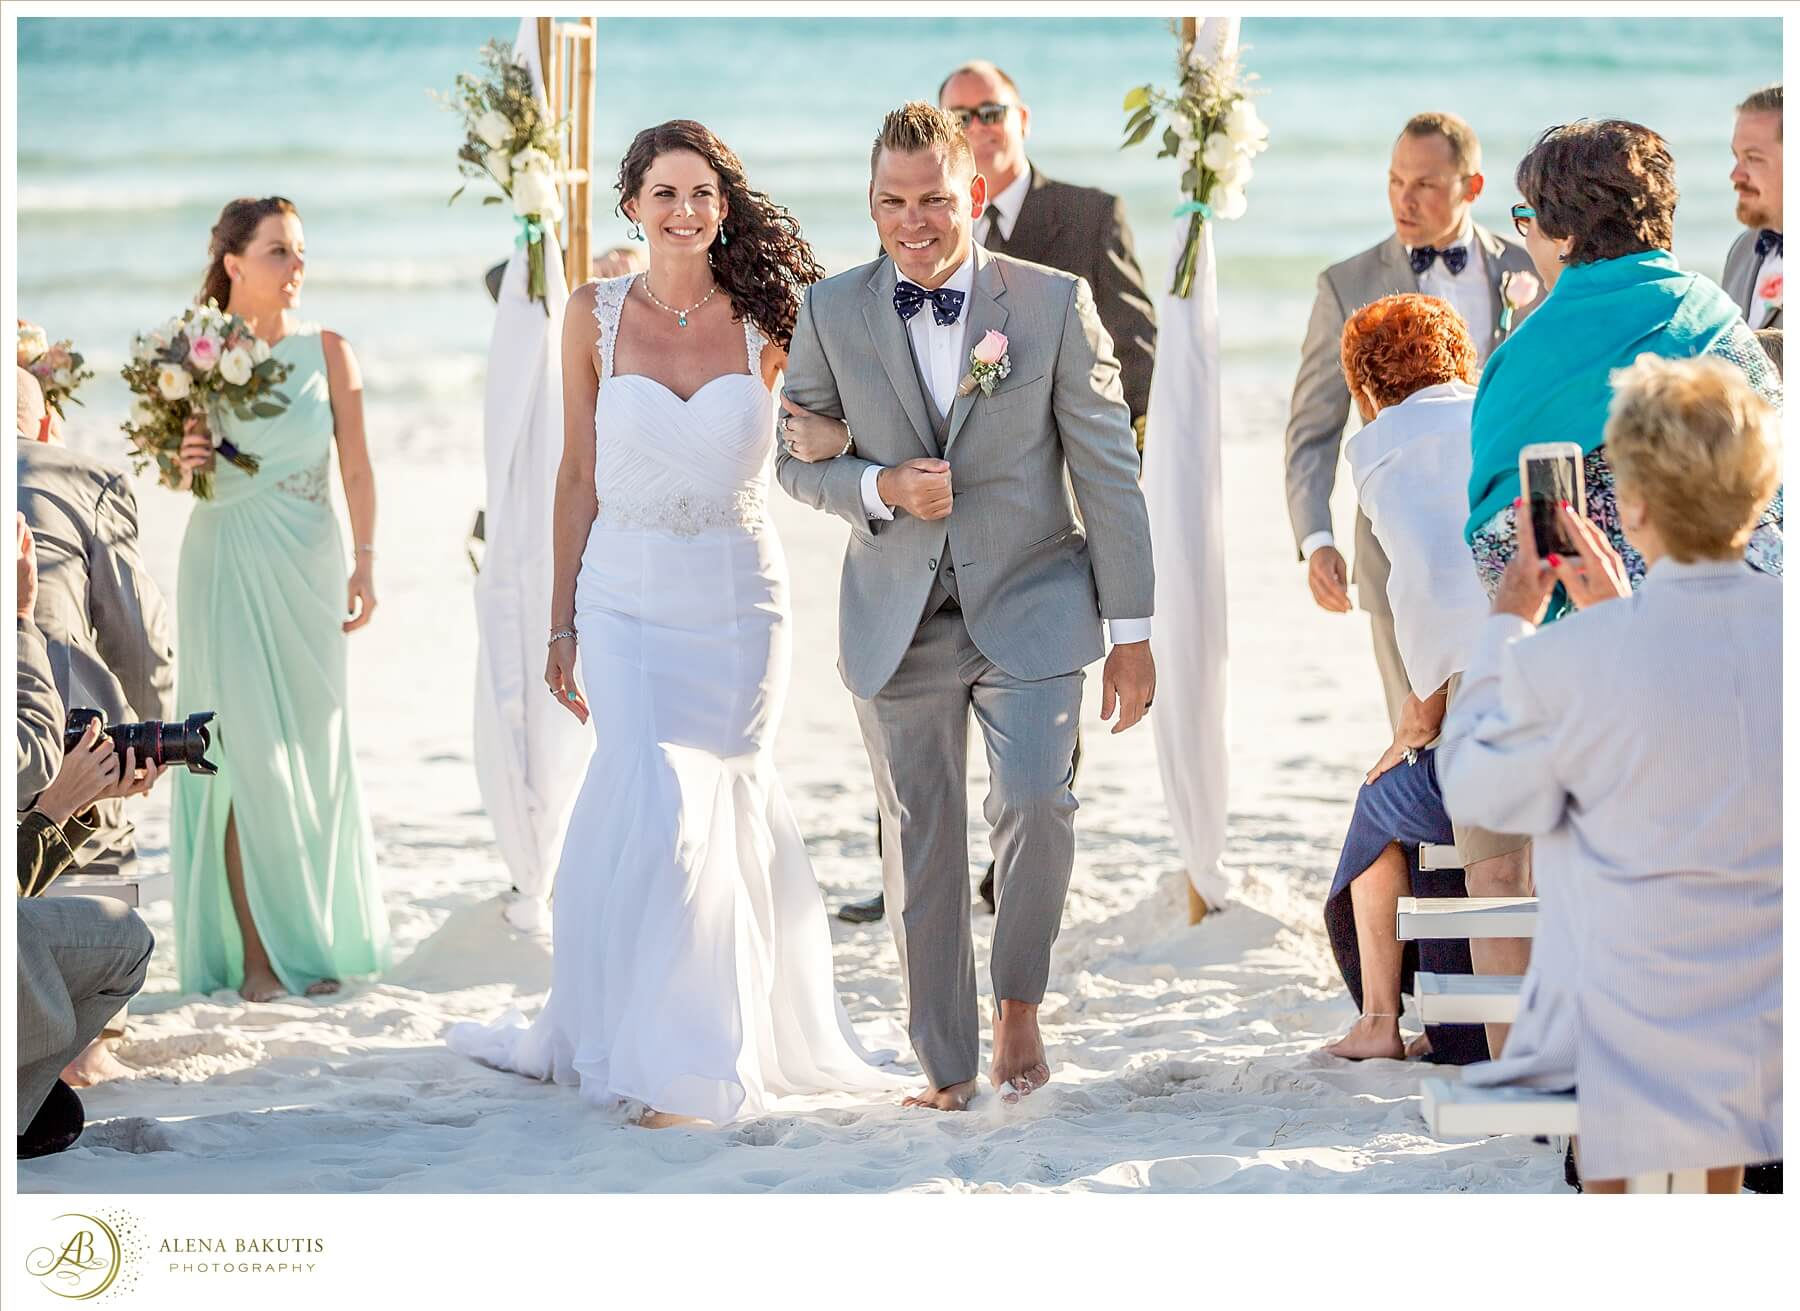 destin beach weddings Alena Bakutis Photography - Amber Brandon-433_WEB